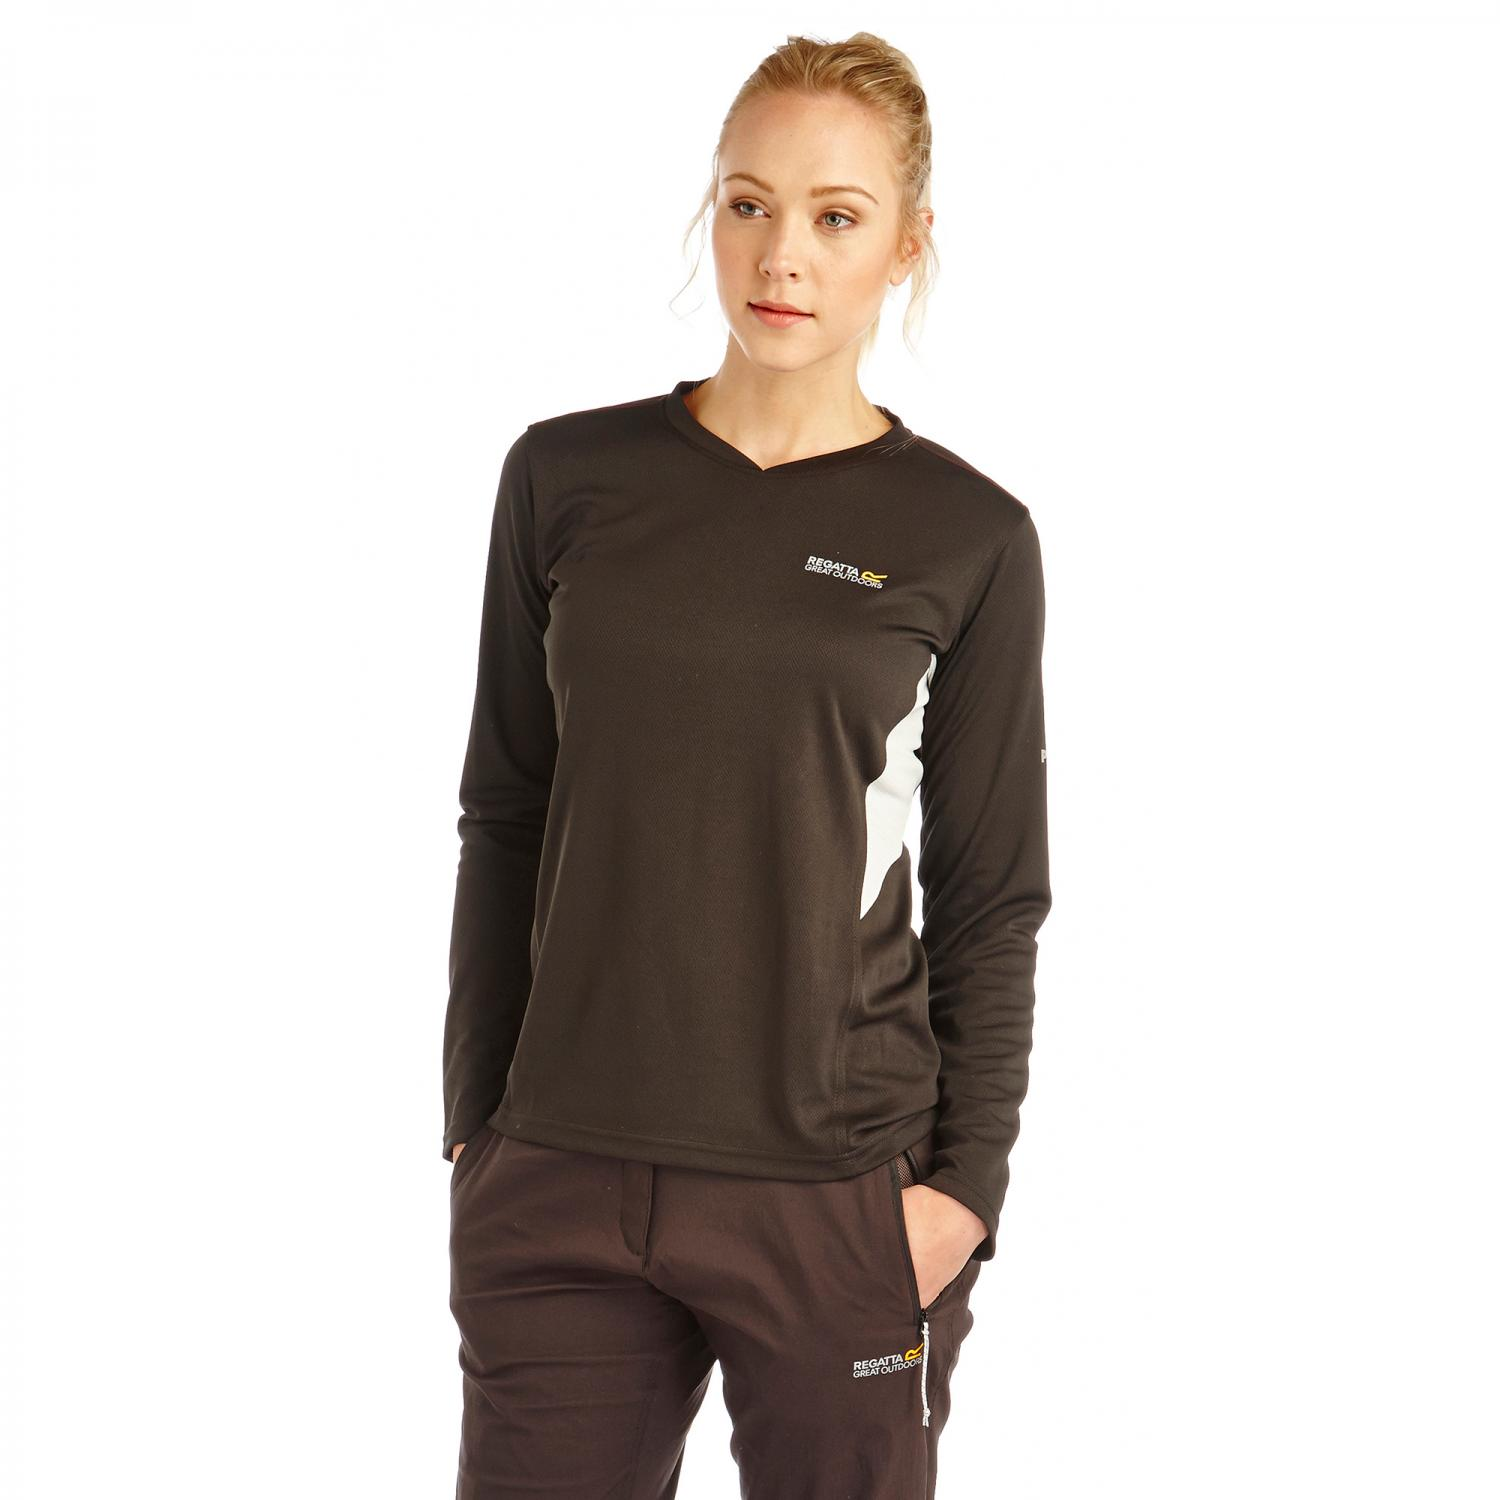 Womens Froswick Long Sleeve T-Shirt Black